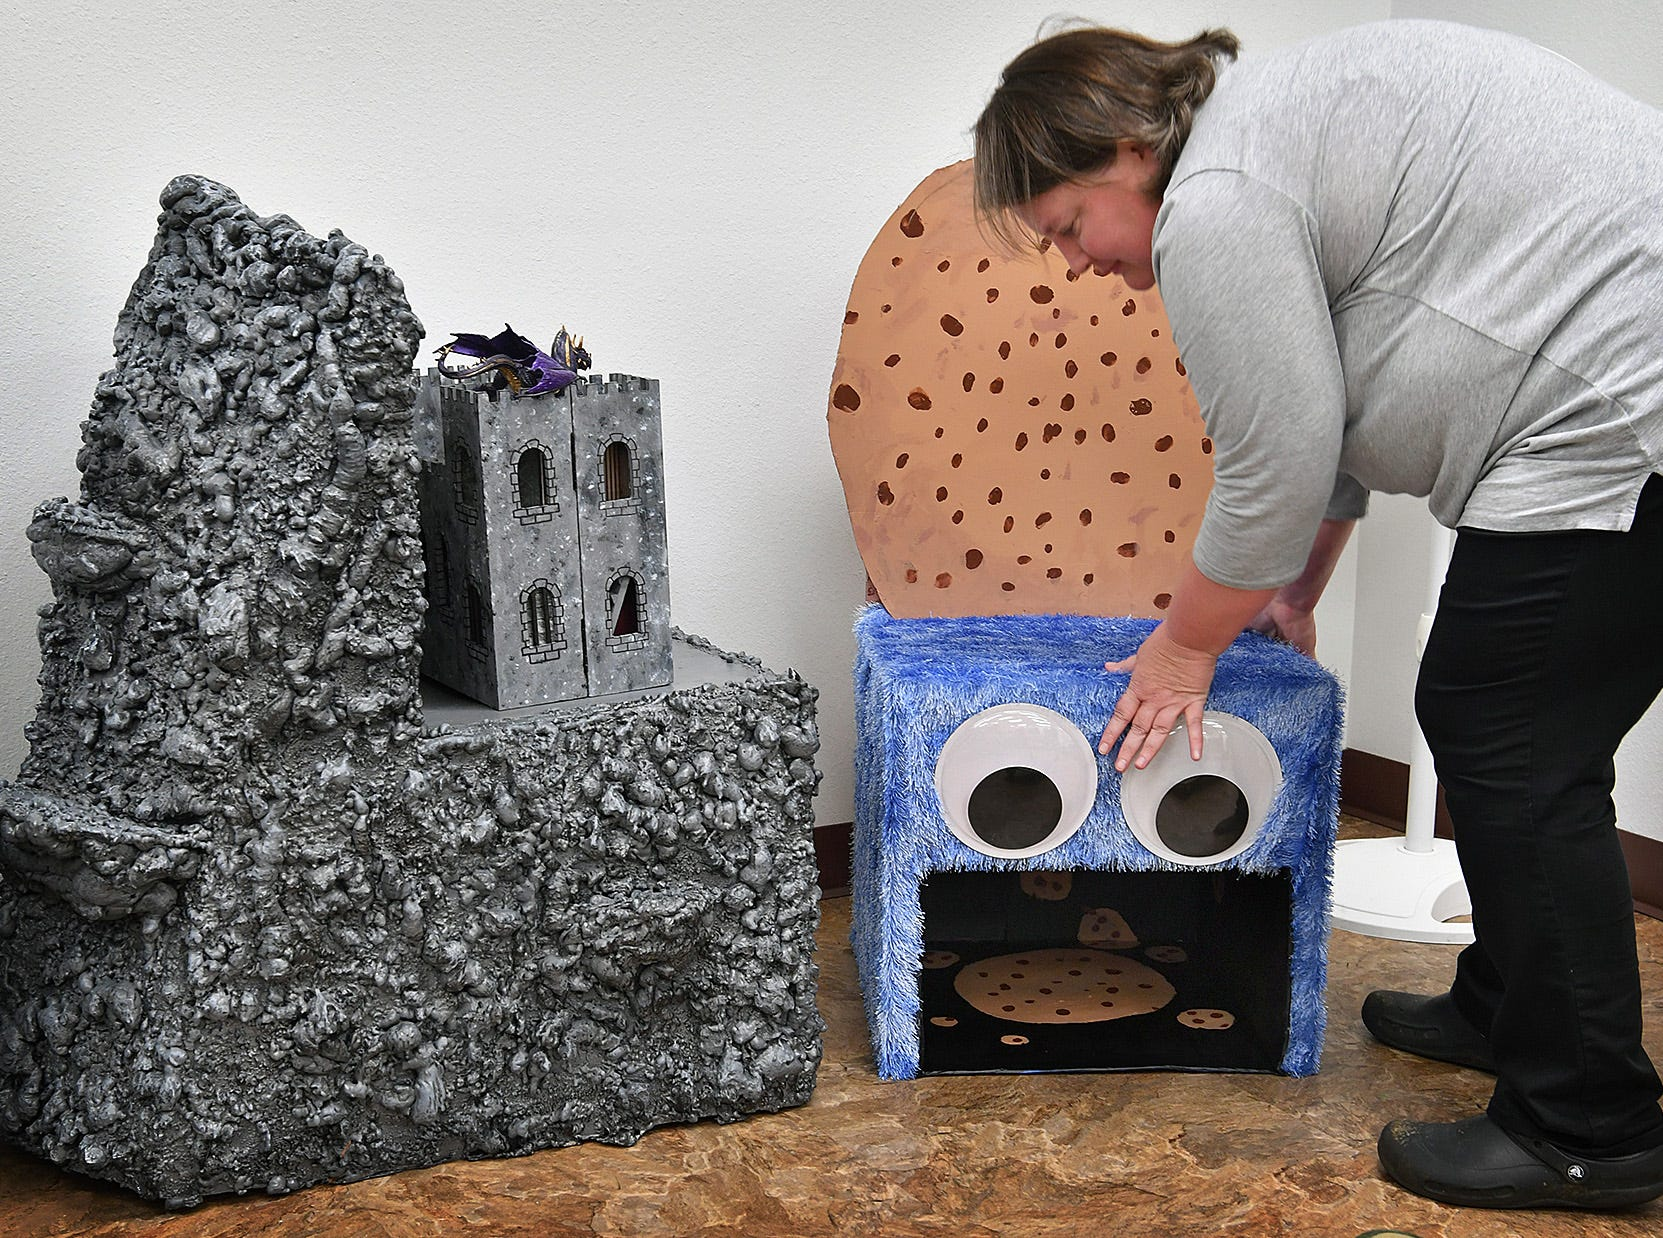 Jamie Dollar positions a Cookie Monster chair by Kathryn Simmerman next to a Castle Mountain chair created by Audrey Simmerman during set up for an artist reception with the Wichita Falls Public LibraryChair-ity Art Auction.